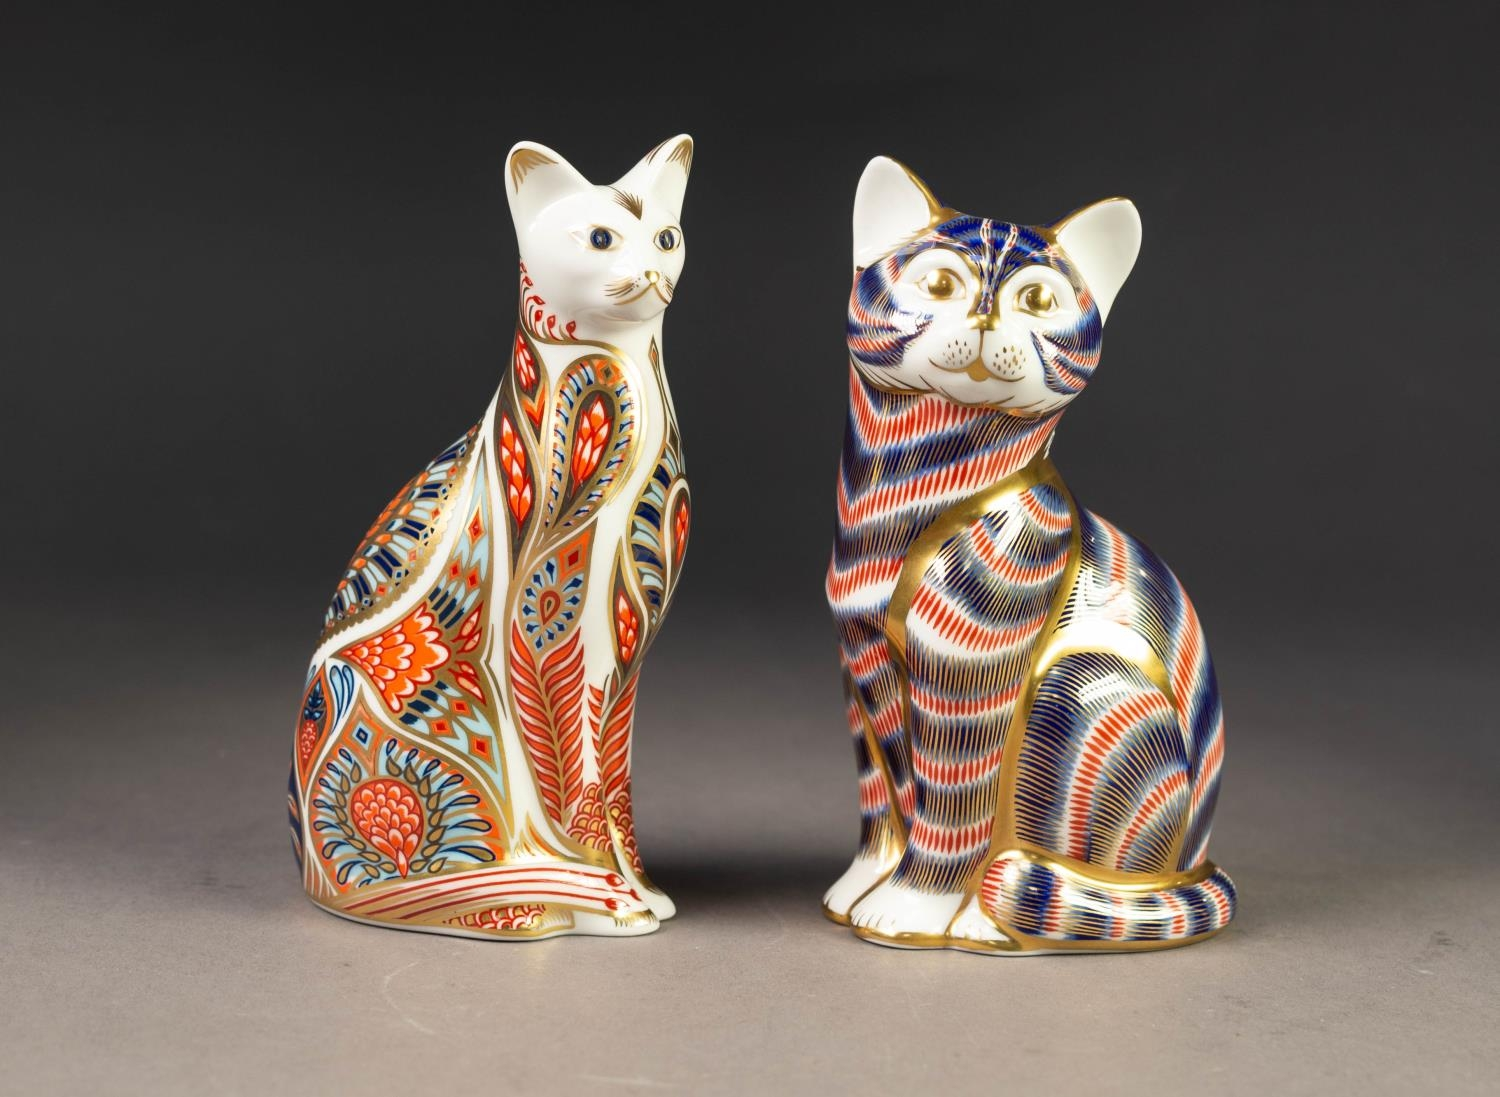 TWO MODERN ROYAL CROWN DERBY IMARI CHINA PAPERWEIGHTS OF CATS, both with gilt stoppers, printed